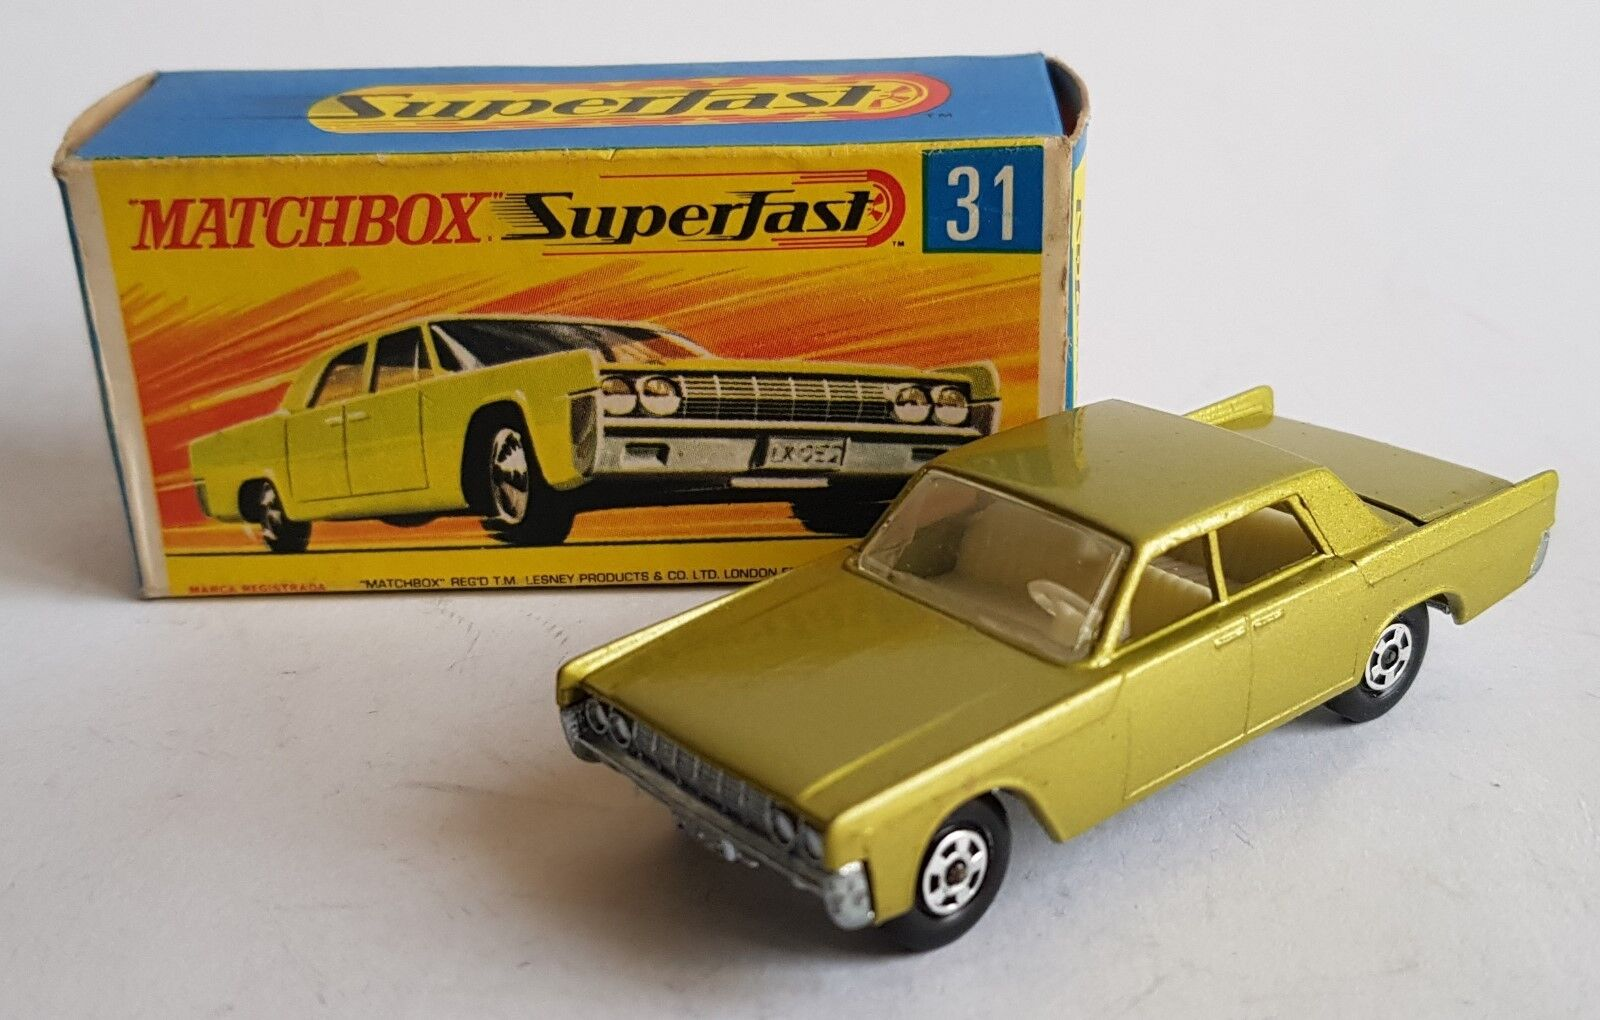 Matchbox Superfast No. 31, Lincoln Contintal, - Superb Mint.